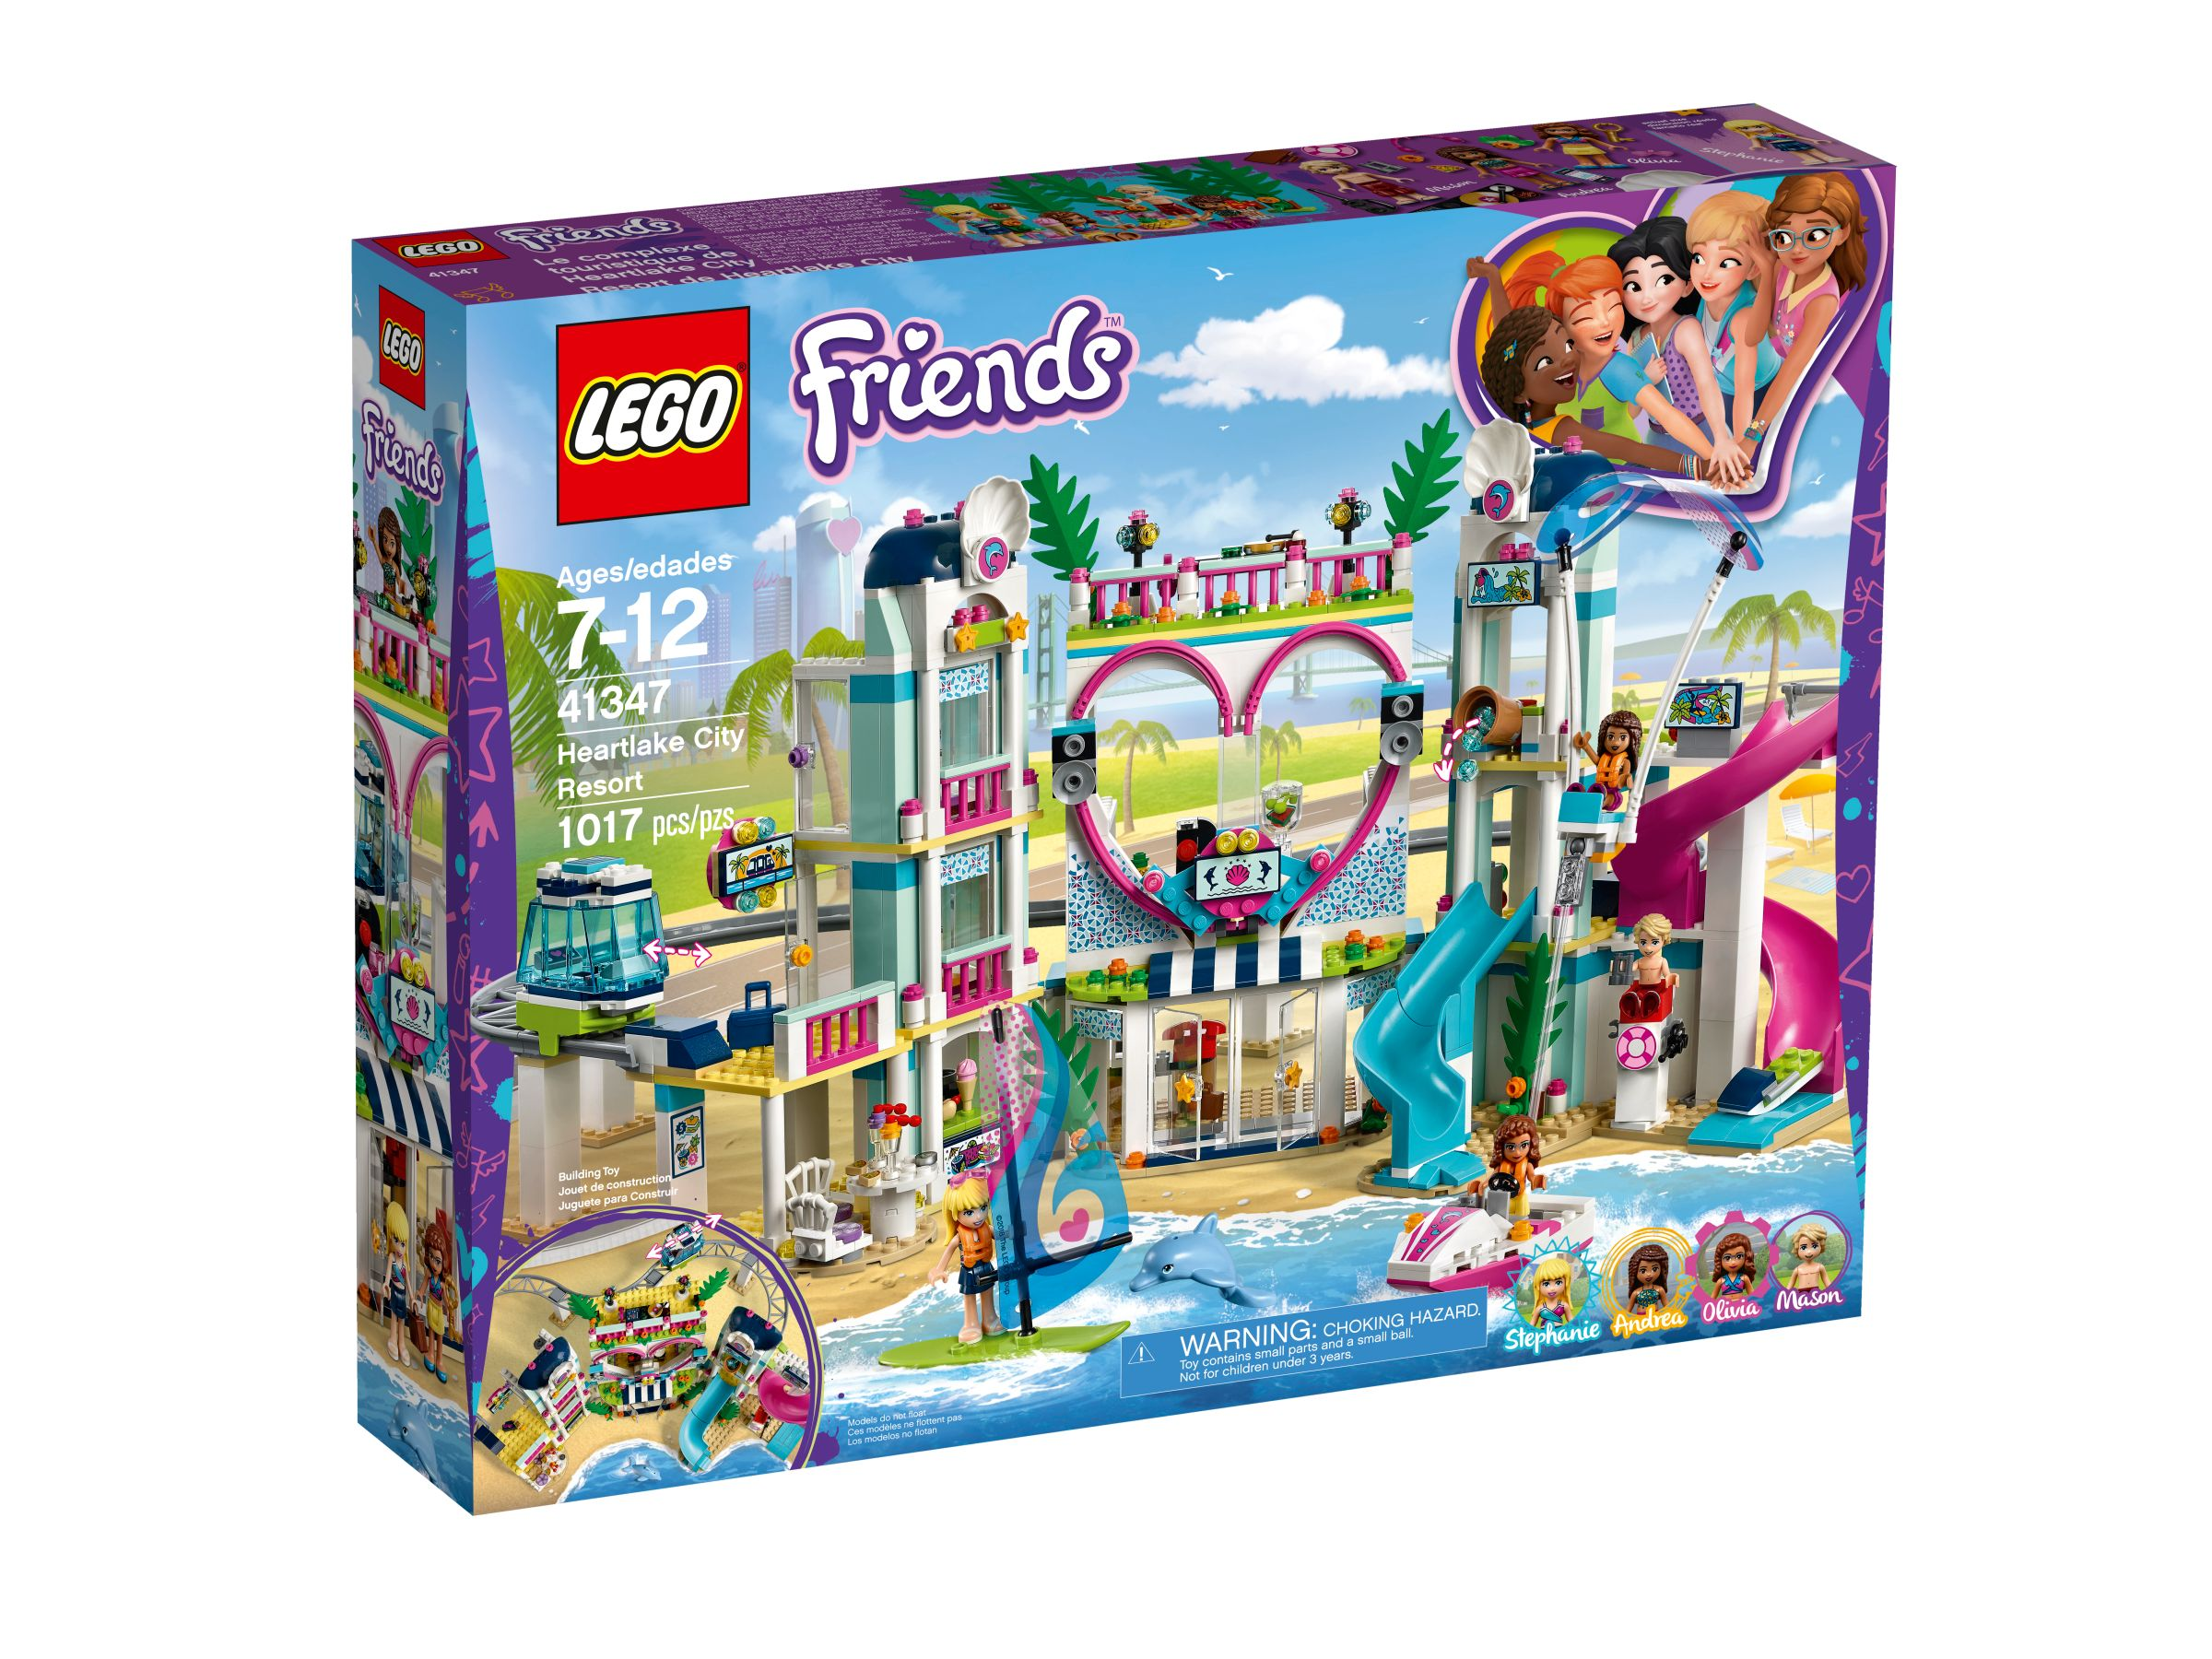 LEGO Friends 41347 Heartlake City Resort LEGO_41347_alt1.jpg